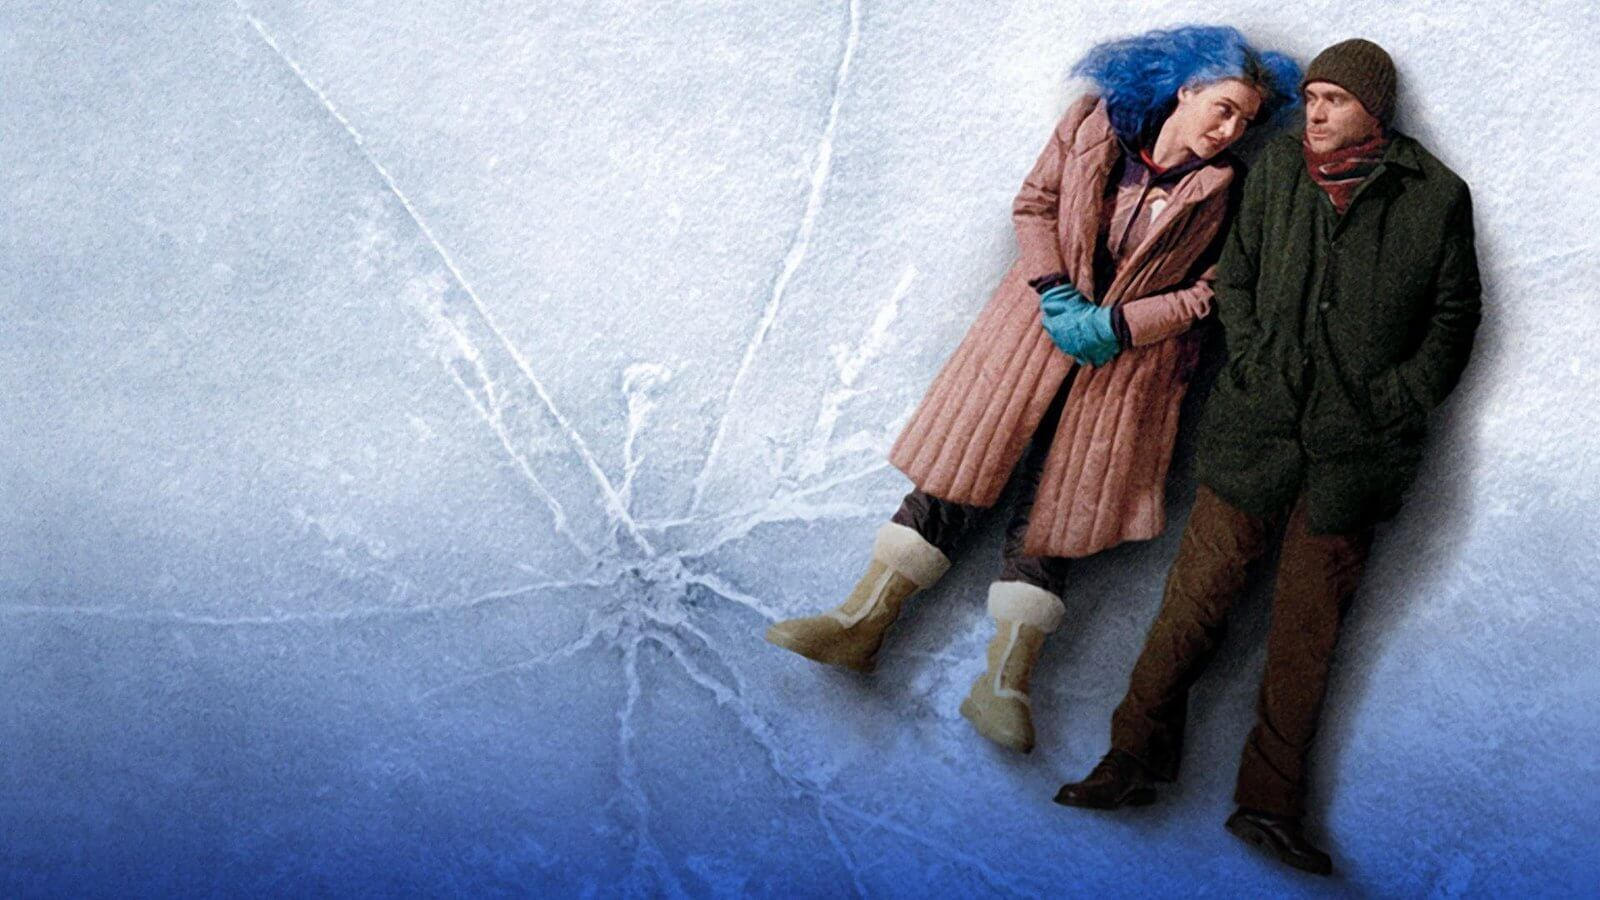 Aerial Shot - Camera angles - Overhead Shot Eternal Sunshine